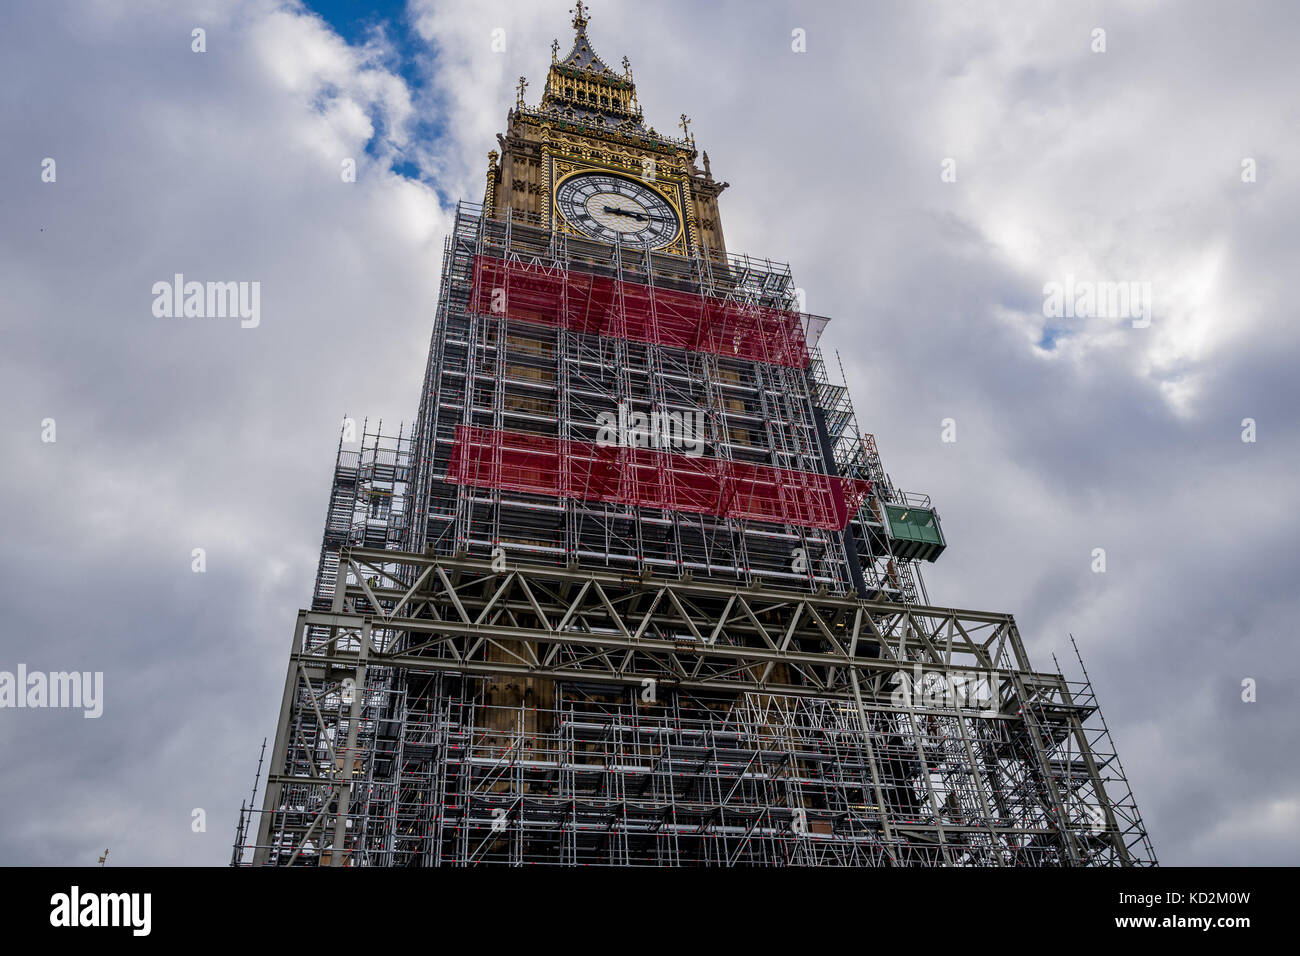 London, UK. 9th Oct, 2017. The cost of renovating the tower that houses Big Ben has more than doubled in 16 months Stock Photo